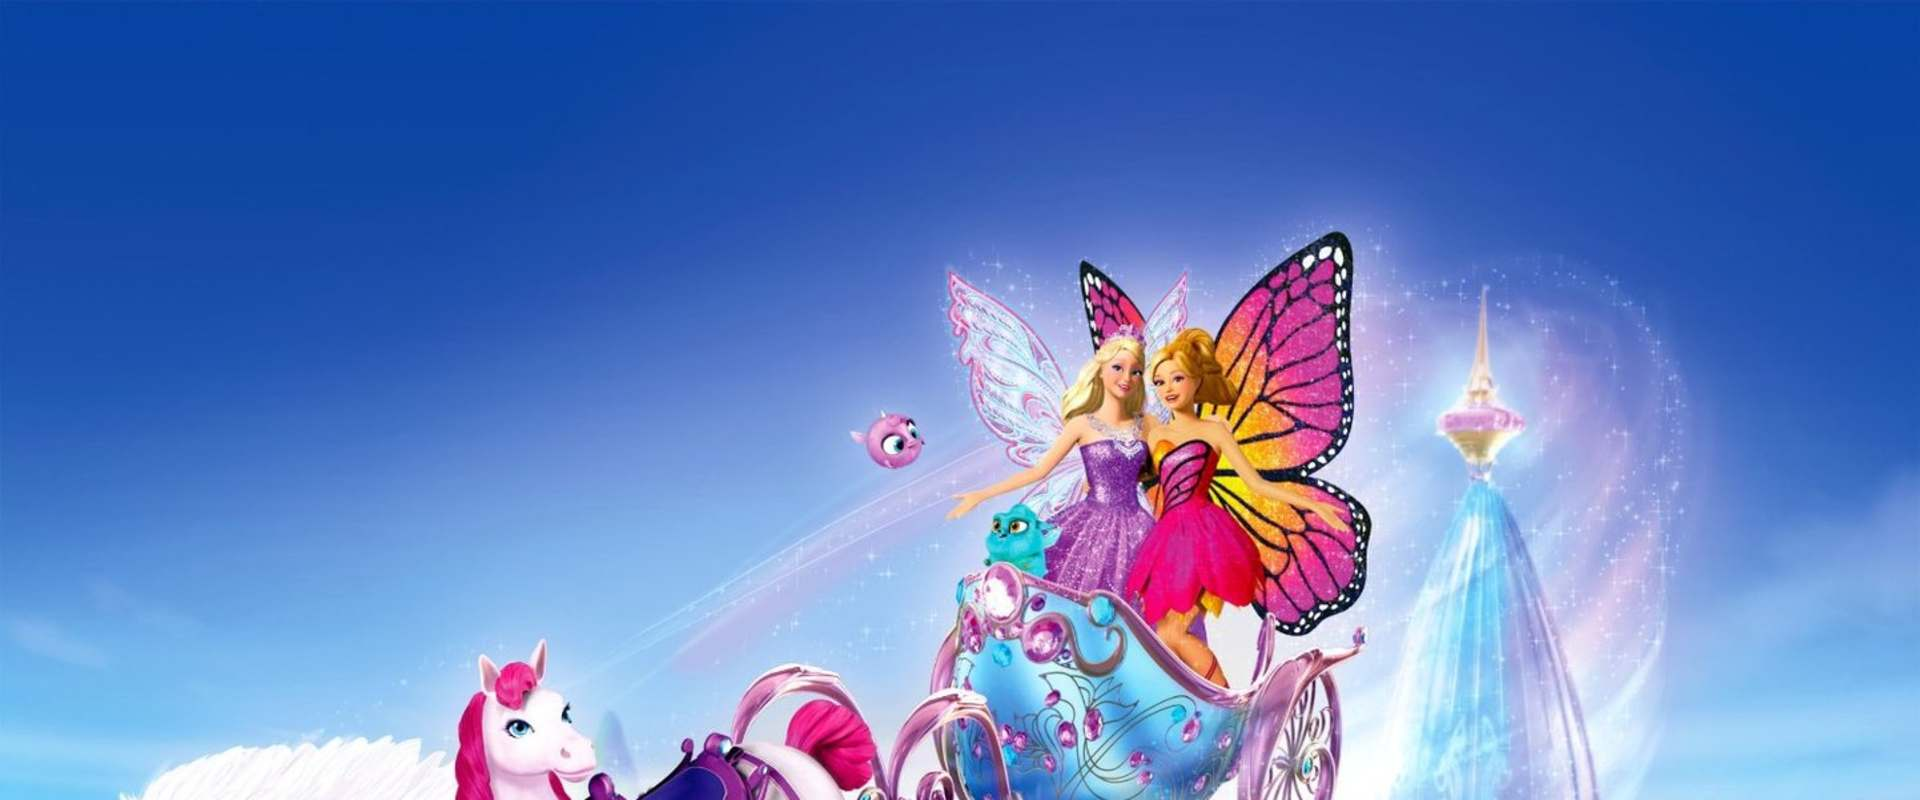 Barbie Mariposa & the Fairy Princess background 1